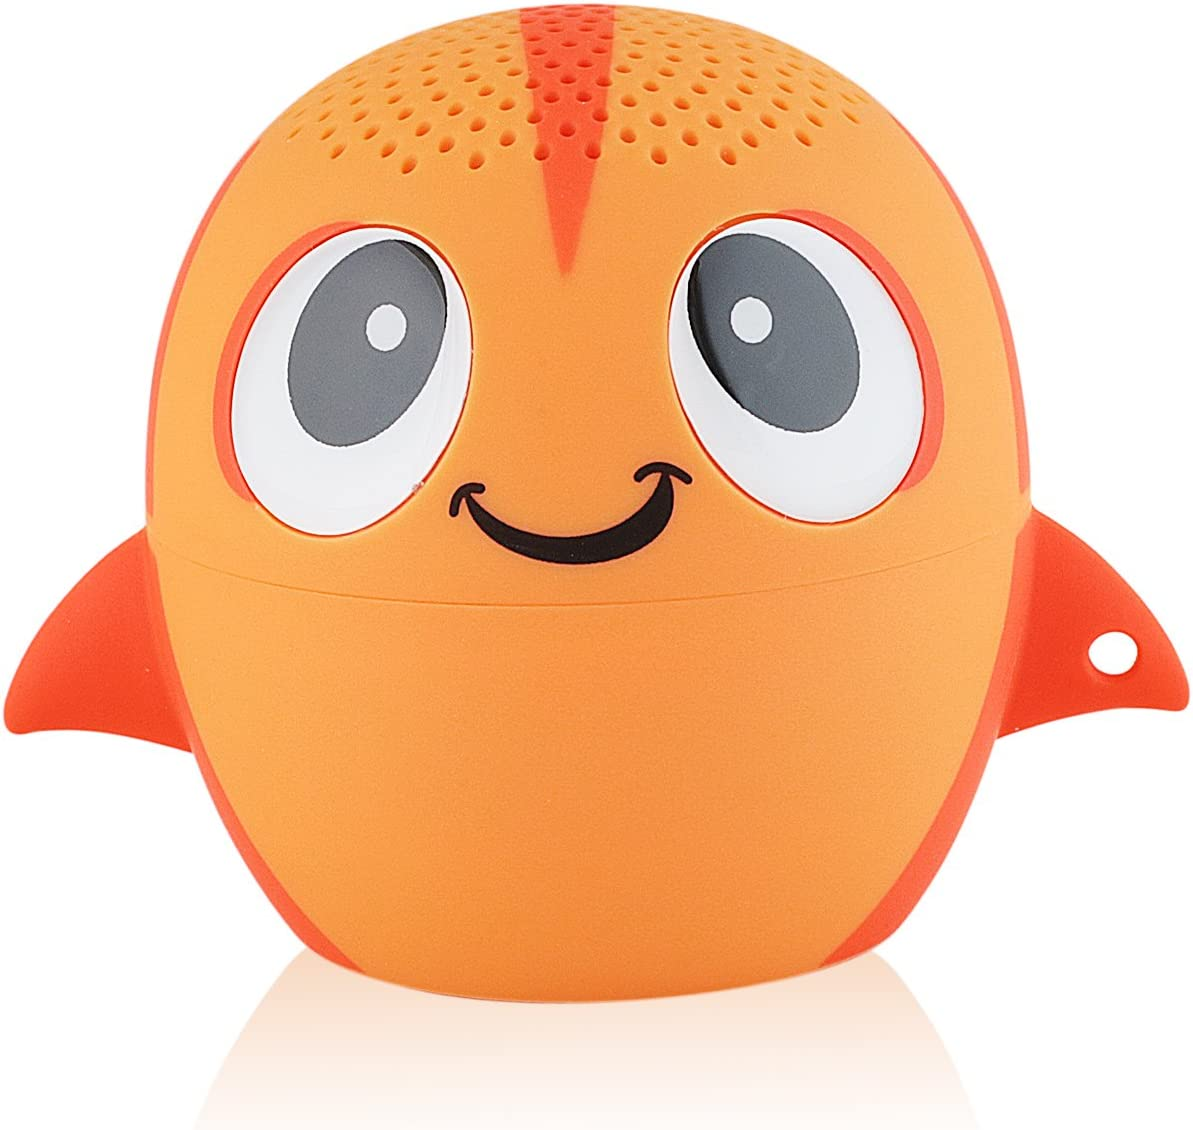 My Audio Pet (Gen 1) Mini Bluetooth Animal Wireless Speaker with Powerful Rich Room-Filling Sound - 3W Audio Driver - Remote Selfie Function - for iPhone/iPad/iPod/Samsung/HTC/Tablets - GOLDIEROCKS